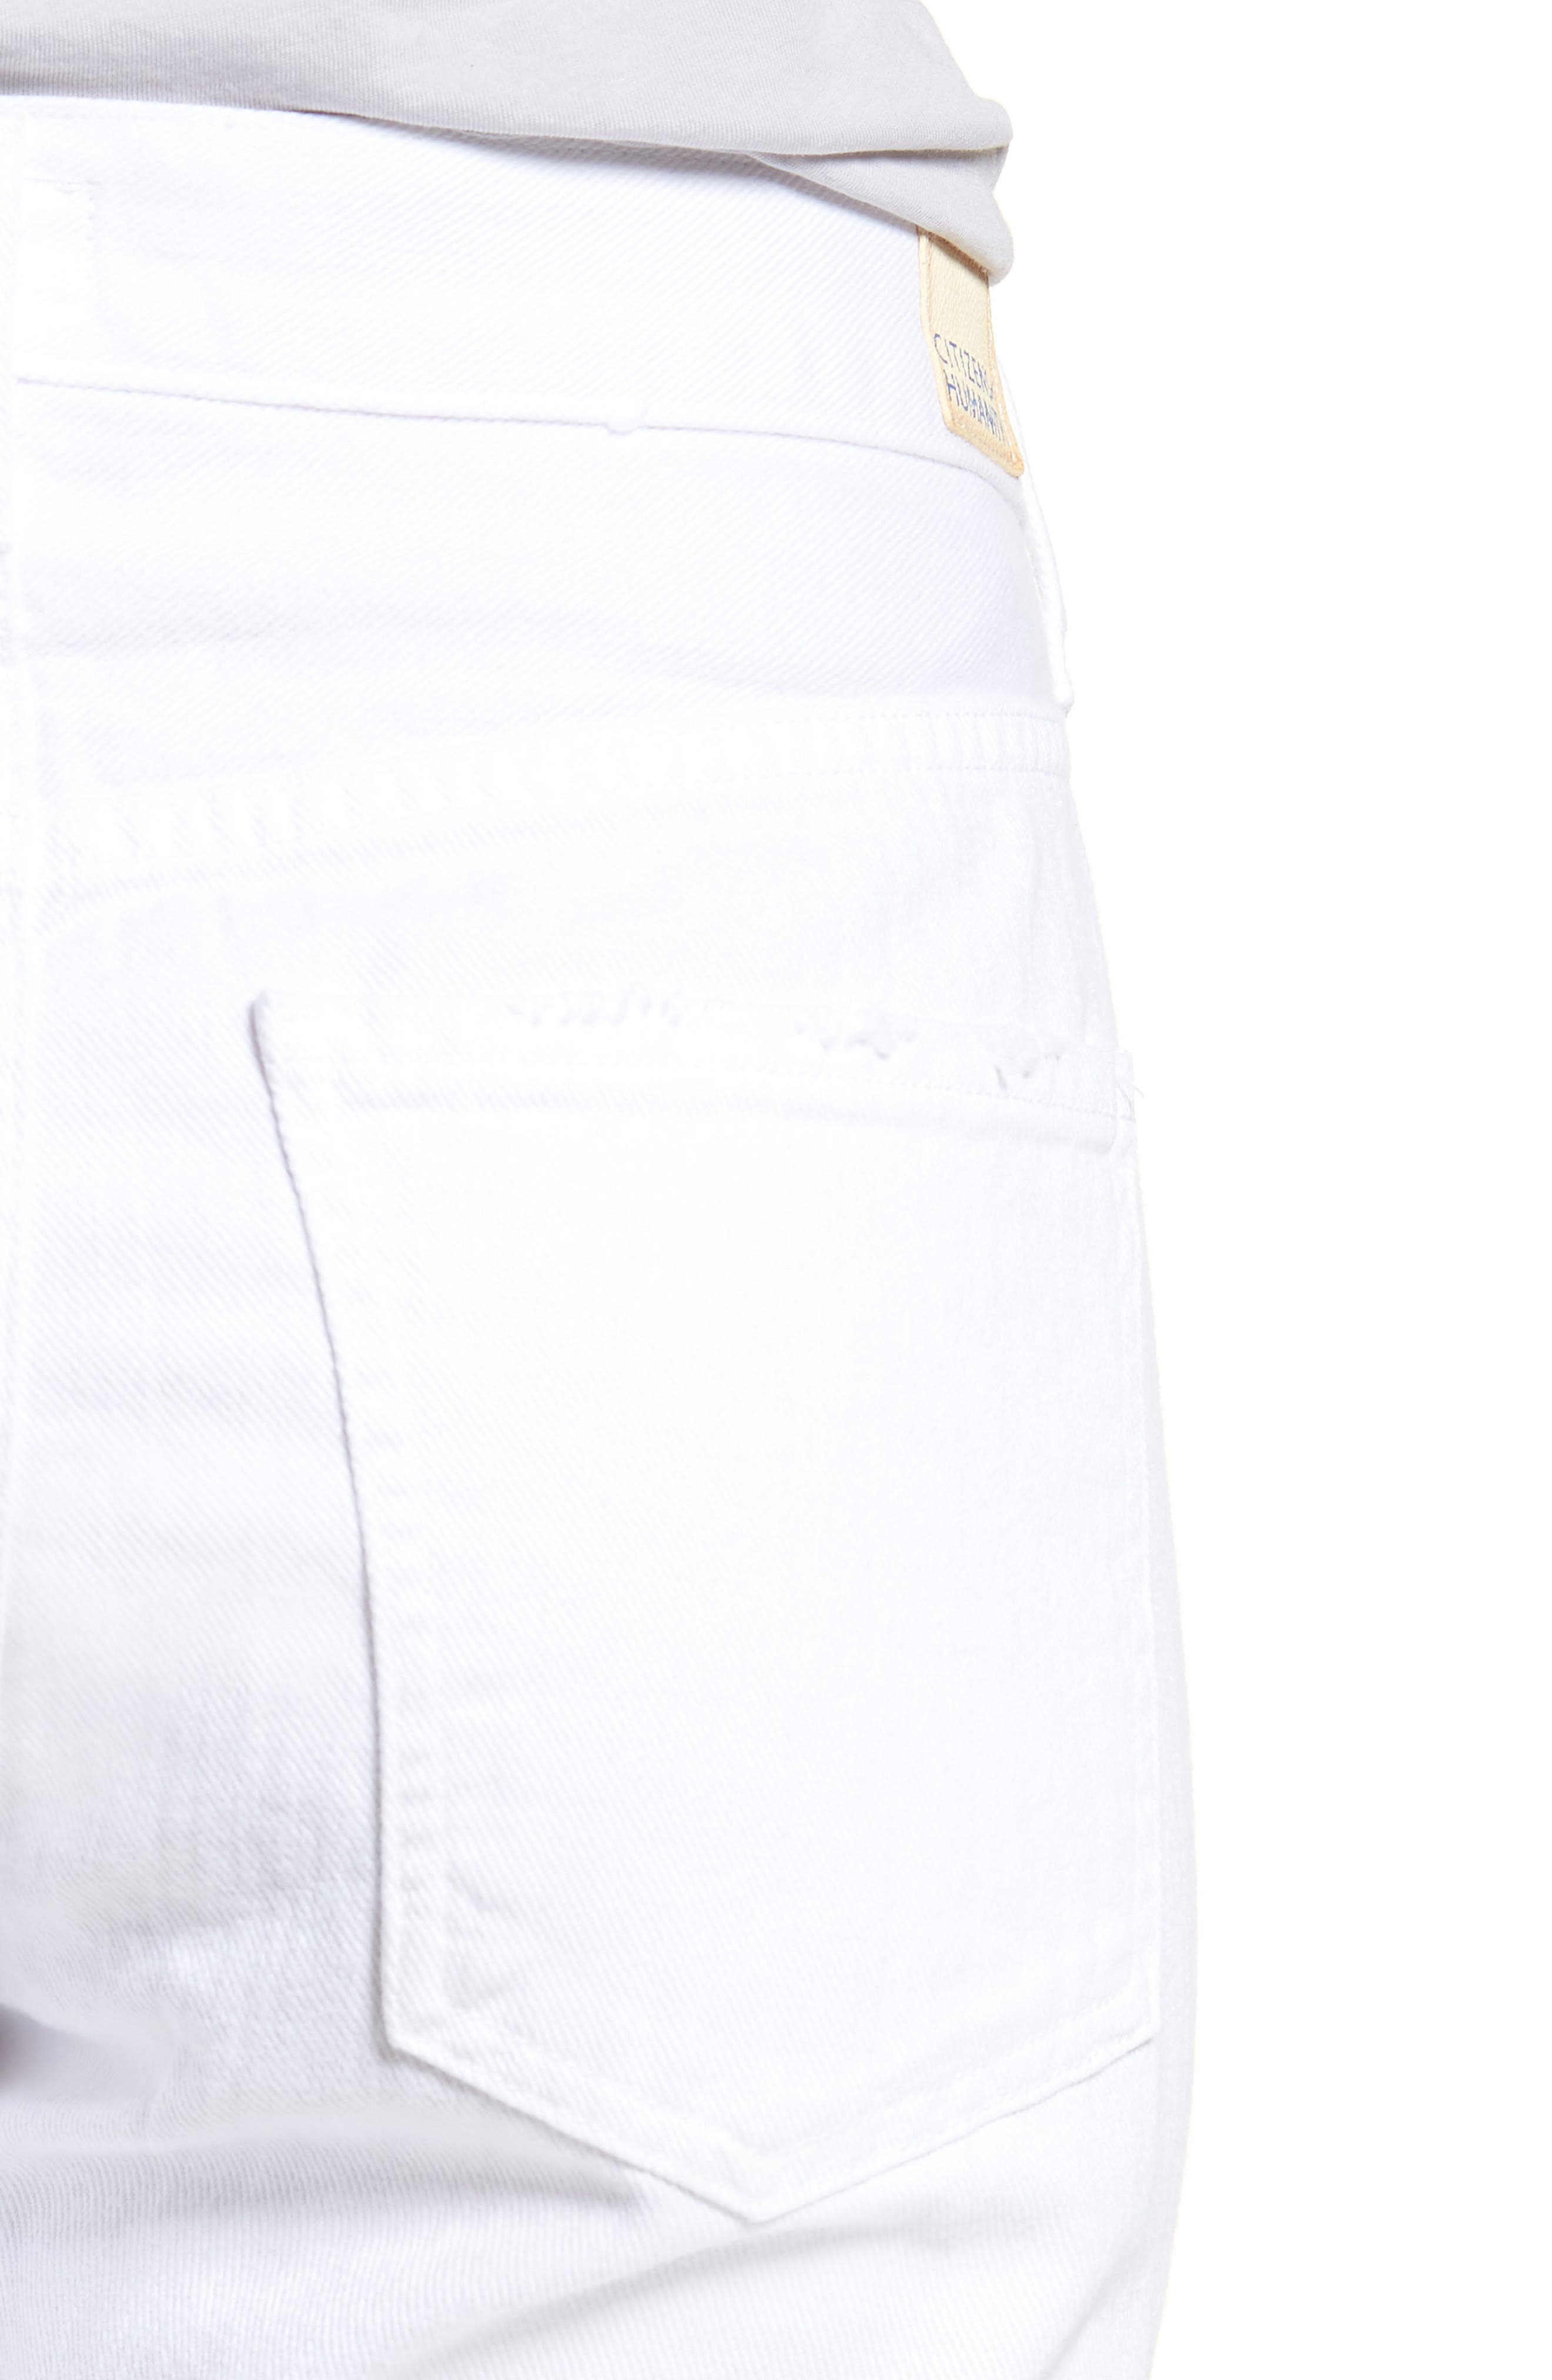 CITIZENS OF HUMANITY, Corey Slouchy Slim Jeans, Alternate thumbnail 5, color, DISTRESSED WHITE